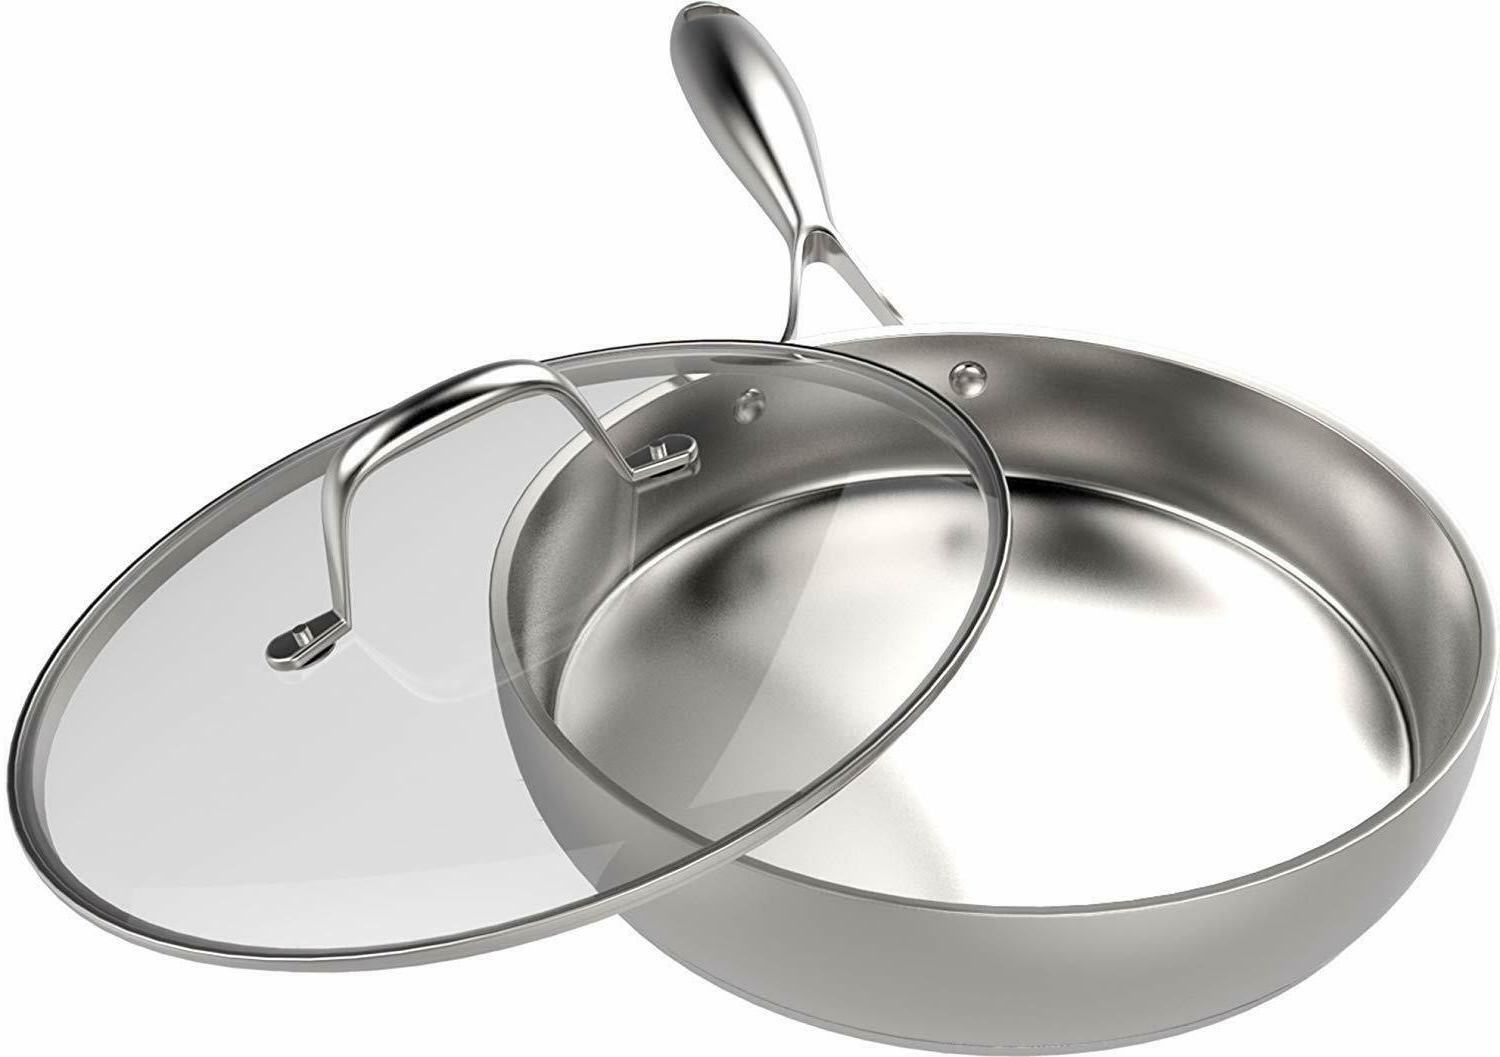 Skillet with Steel Compatible Utopia Kitchen